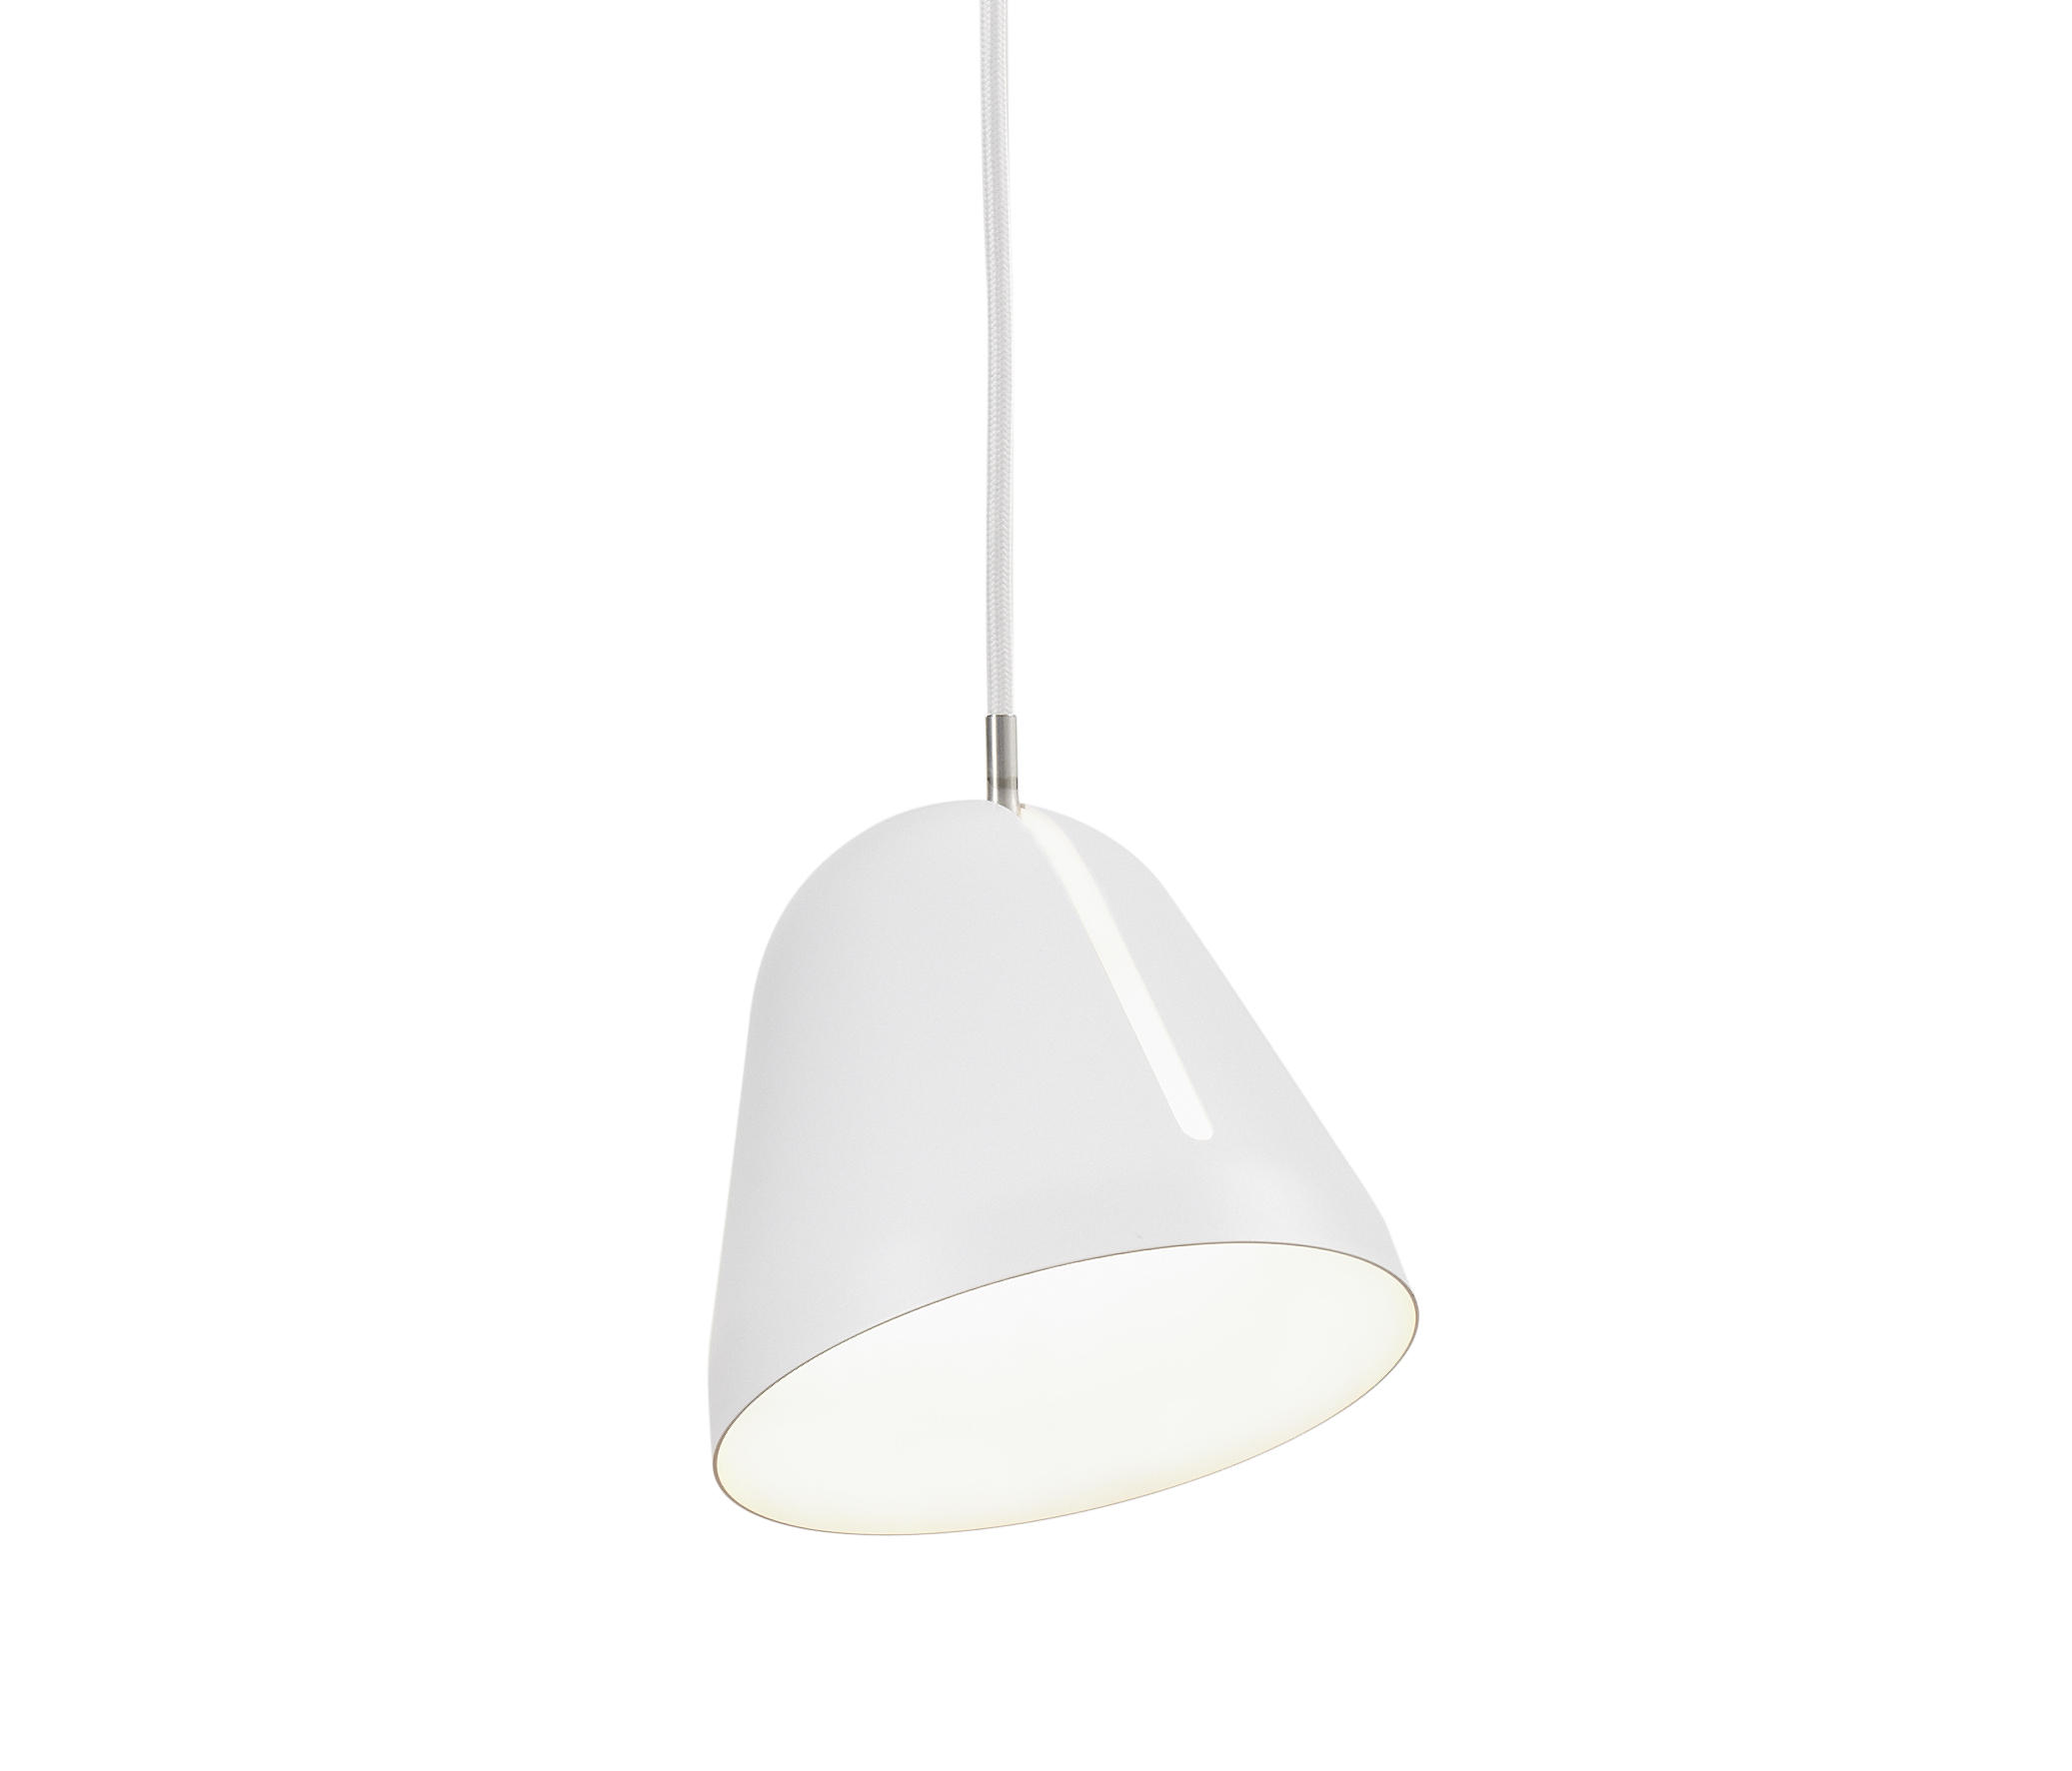 Tilt S Pendant Lamp General Lighting From Nyta Architonic